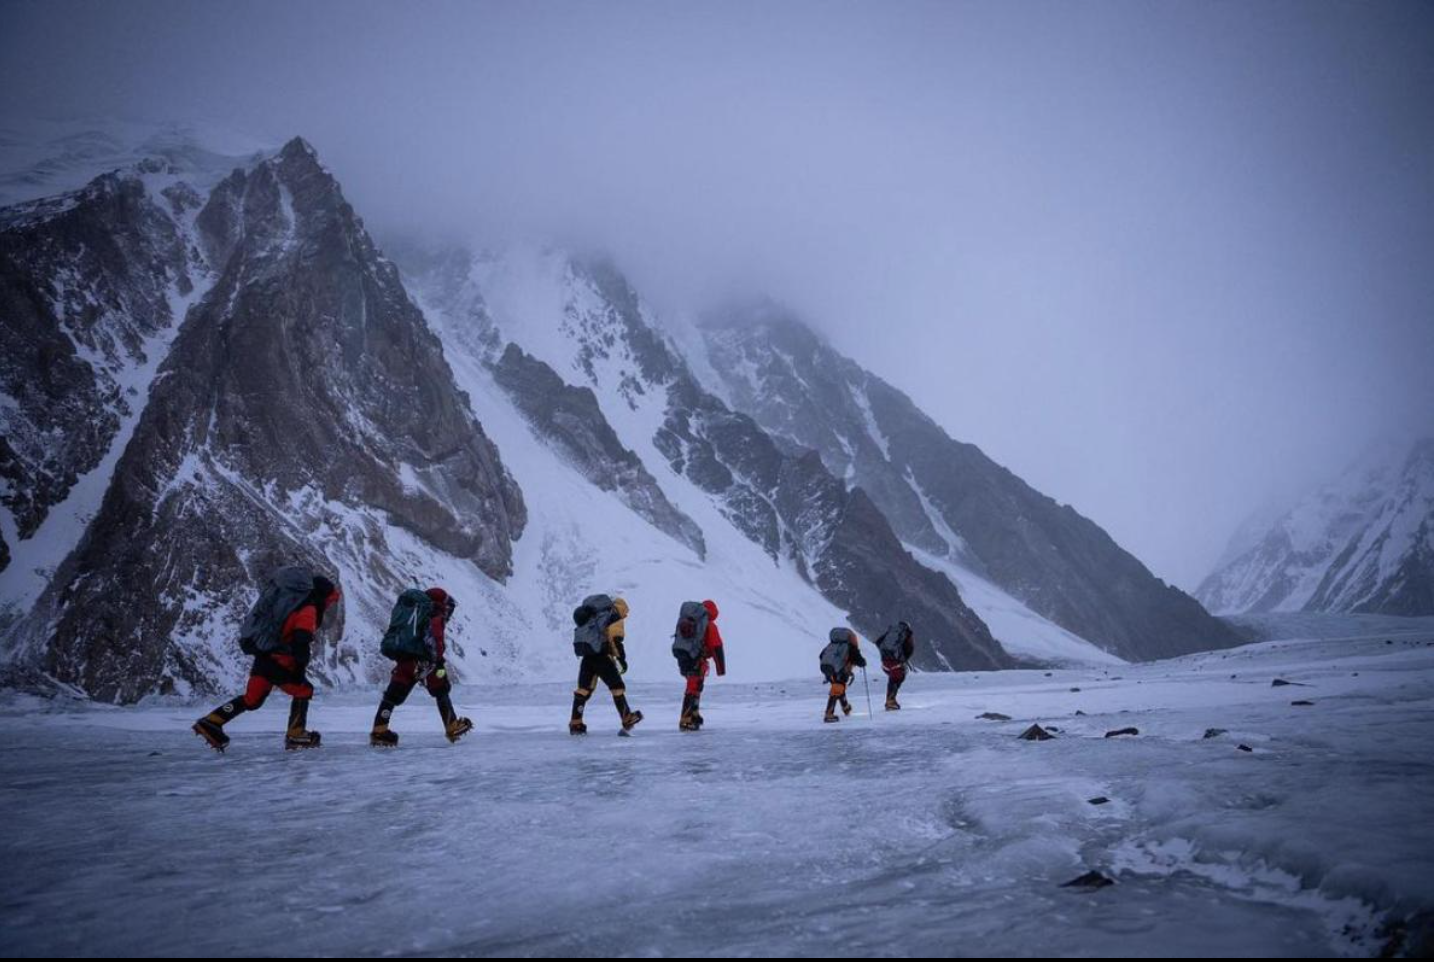 Many people perished when conquering K2 both in winter and summer.  Photo: NatGeo